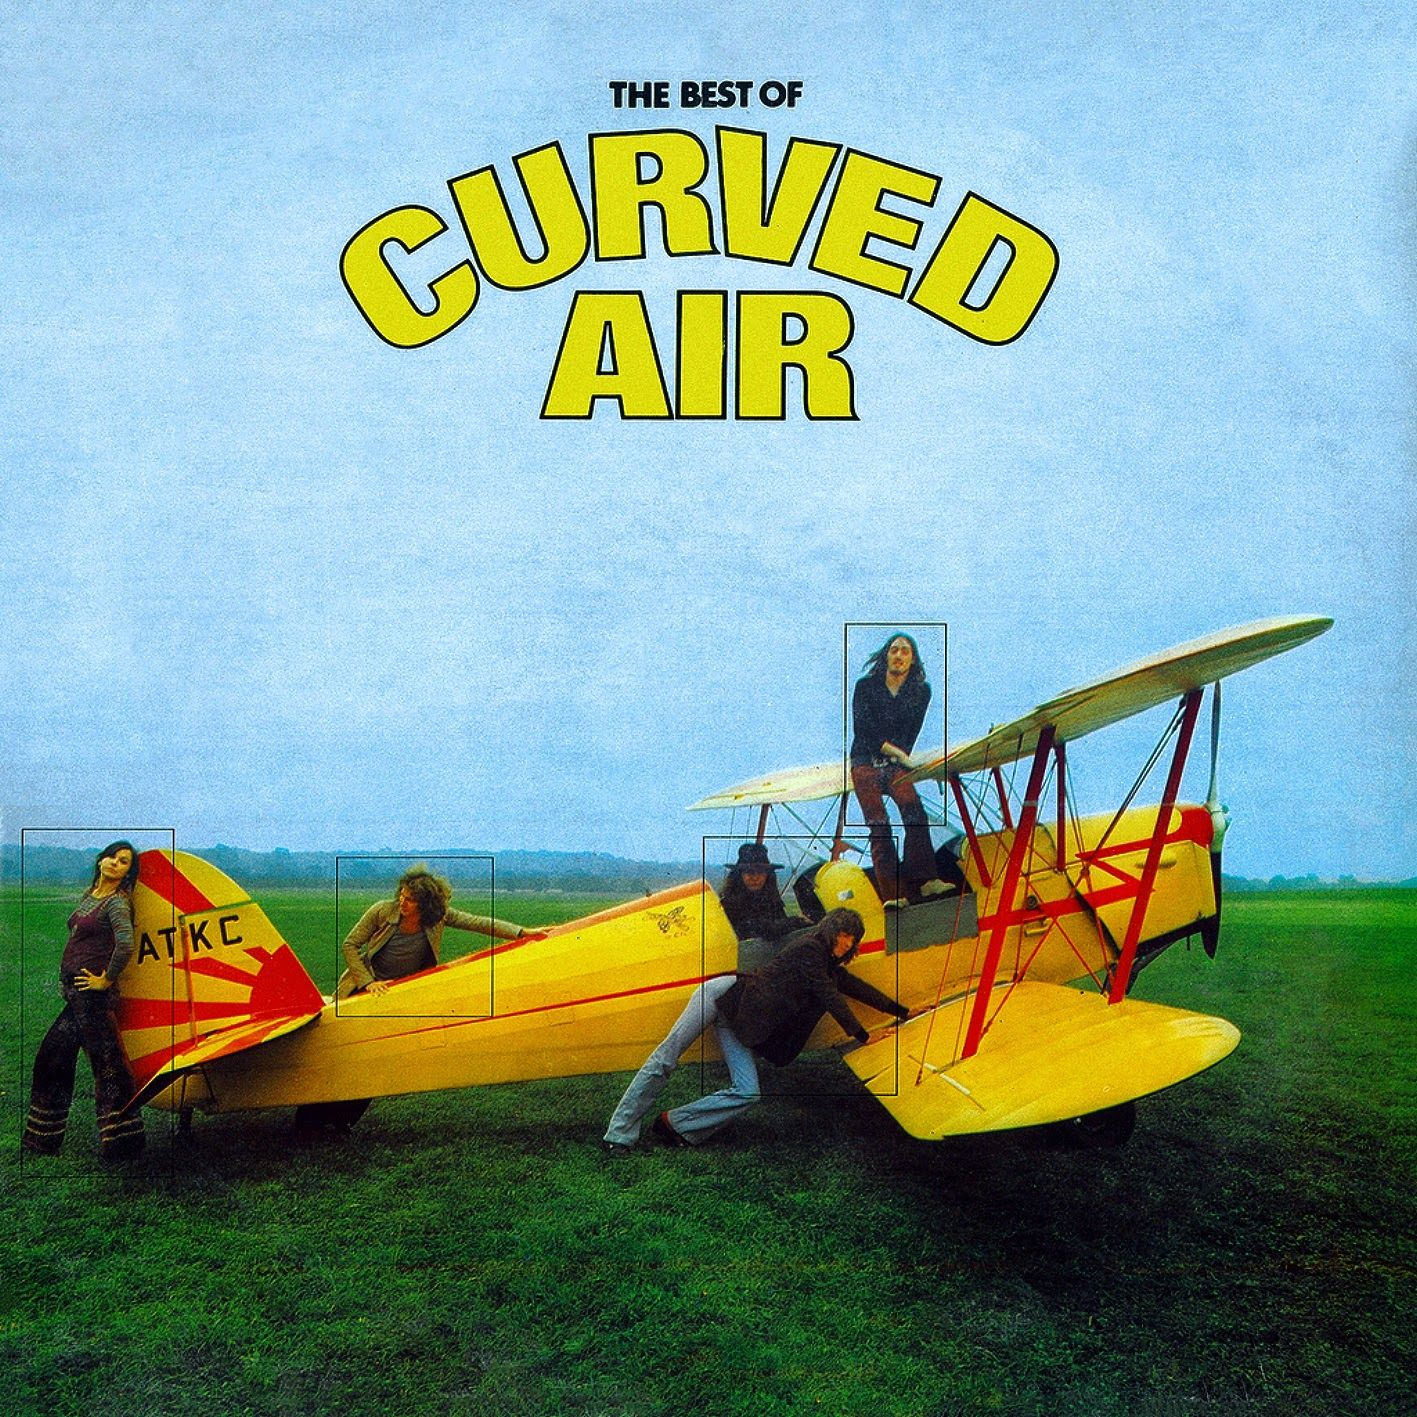 Free Download Cover Designer Curved Air The Best Of